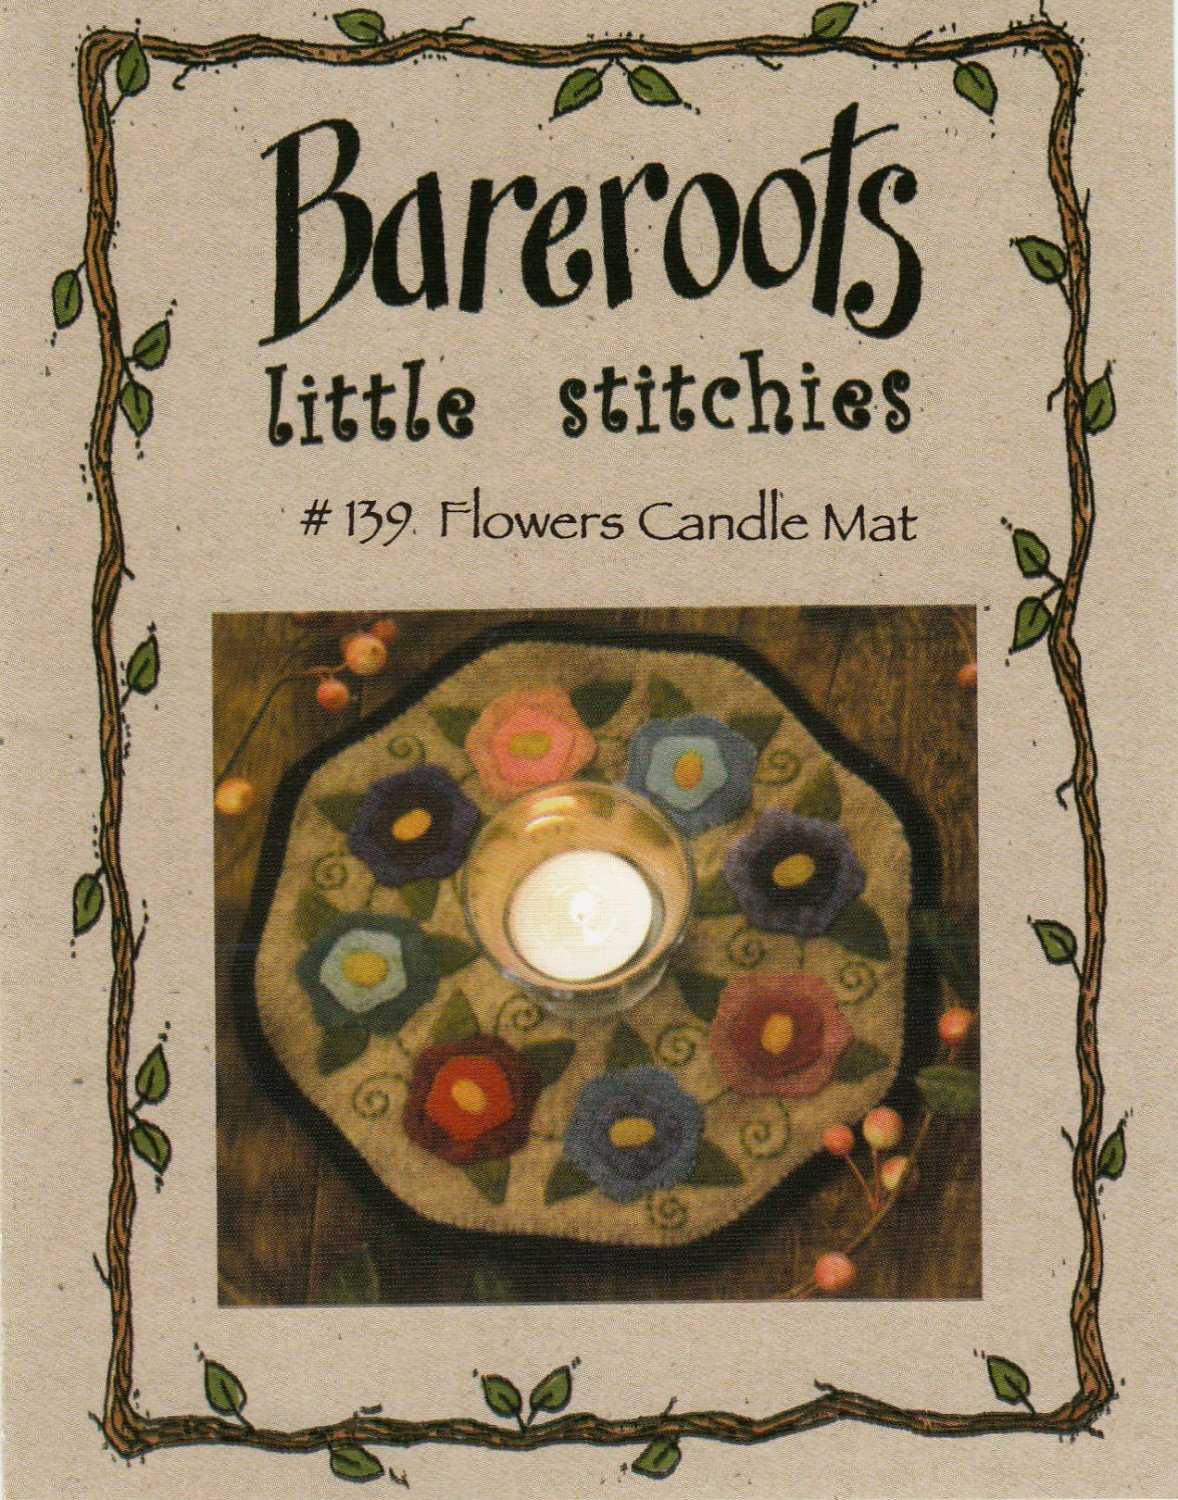 Bareroots Little Stitchies - Flowers Candle Mat Kit With Pattern